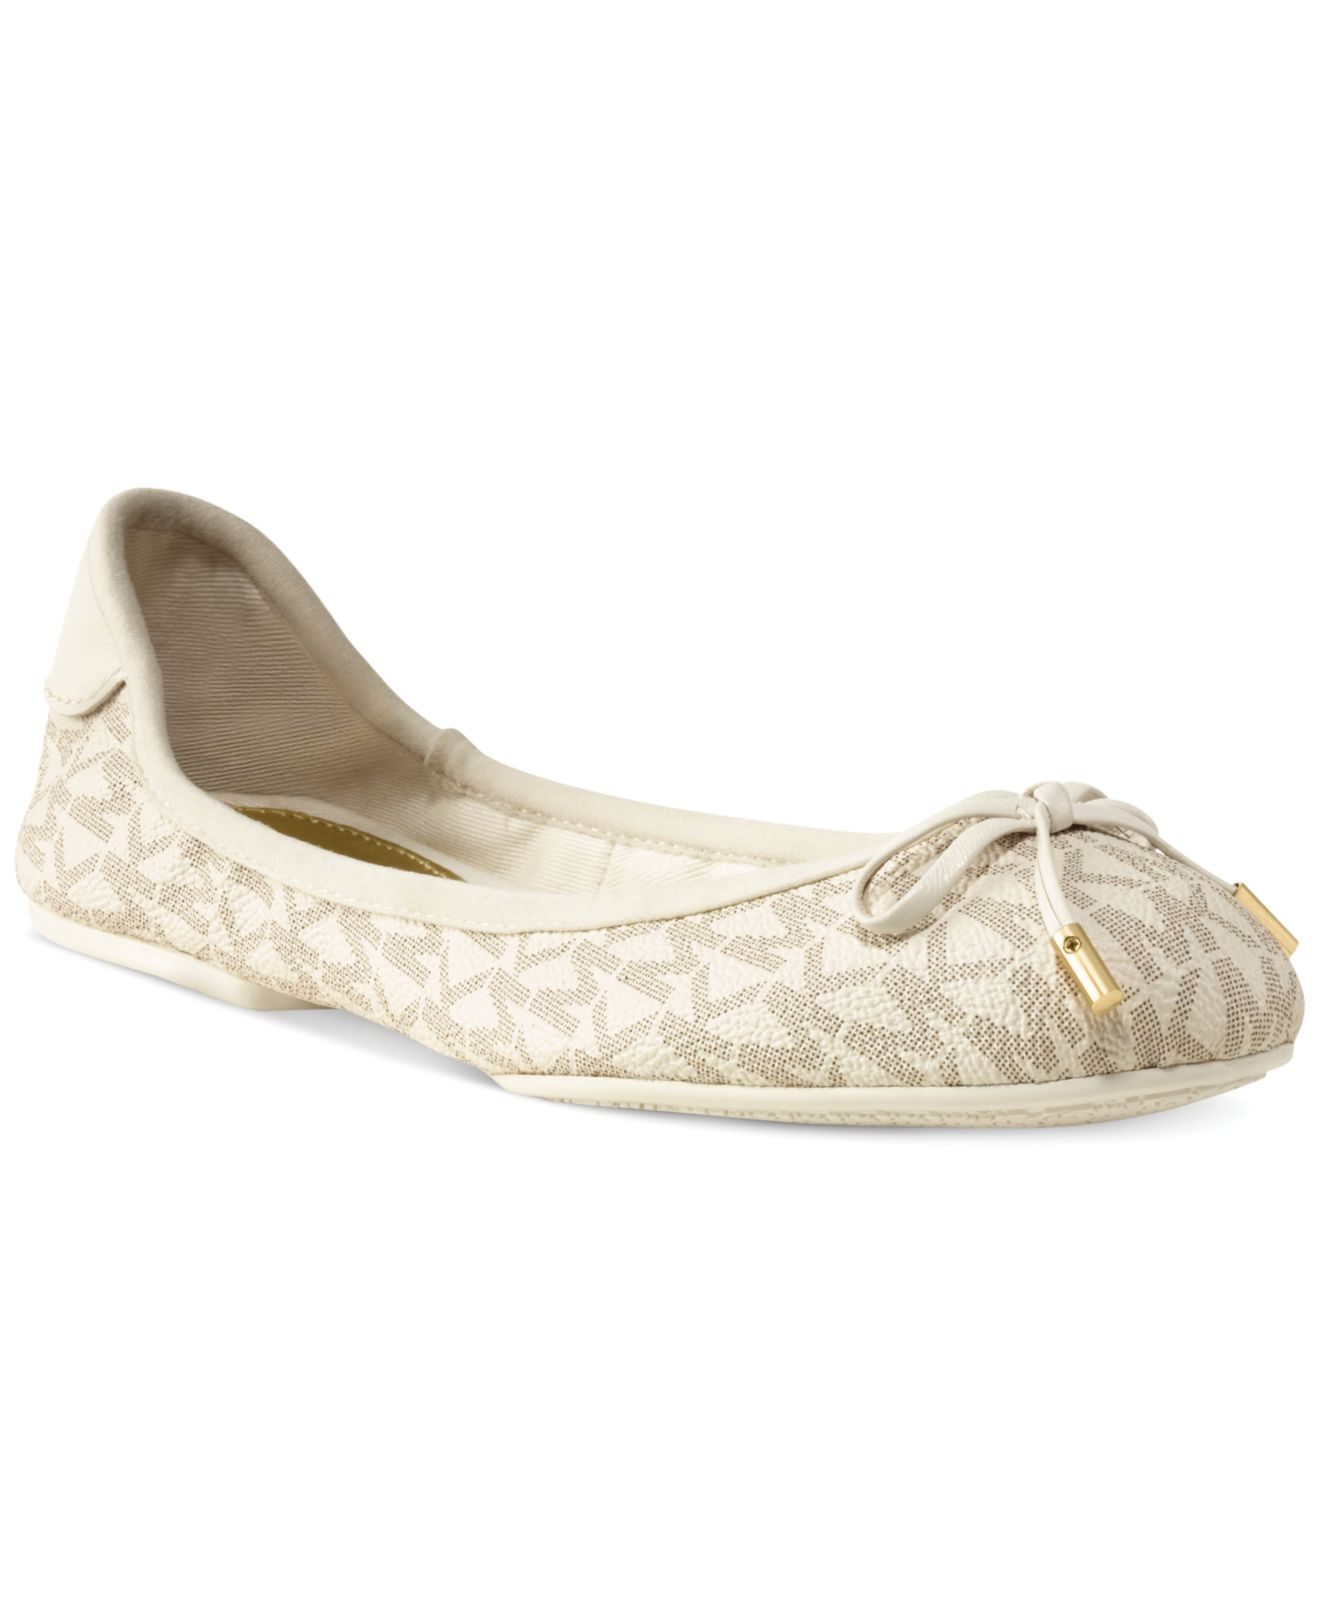 196c0020d907 ... Lyst - Michael Kors Michael Mk City Ballet Flats in Natural